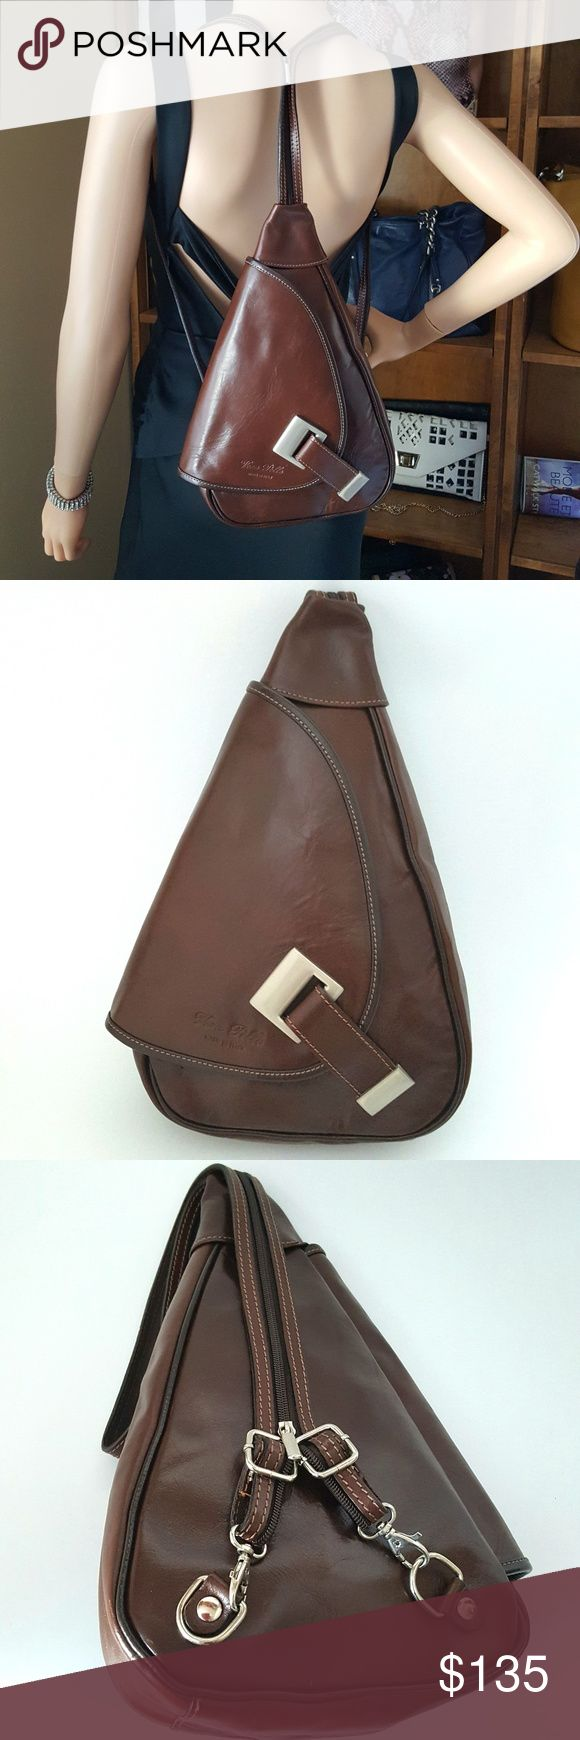 """Vintage VERA PELLE Made In Italy Leather Backpack 1980's Vera Pelle backpack. Company Vera Pelle only produces exclusive leather goods. Rich chocolate brown leather. Silvertone hardware.  Adjustable and versitile 28"""" shoulder strap/sling. Approx. 13"""" x 8"""" x 3"""". Magnetic closure. Brown interior lining. One interior and exterior zip pocket. Very good to excellent vintage condition. Minimal superficial scratches. Please review all photographs as a part of the description and condition. Vintage…"""